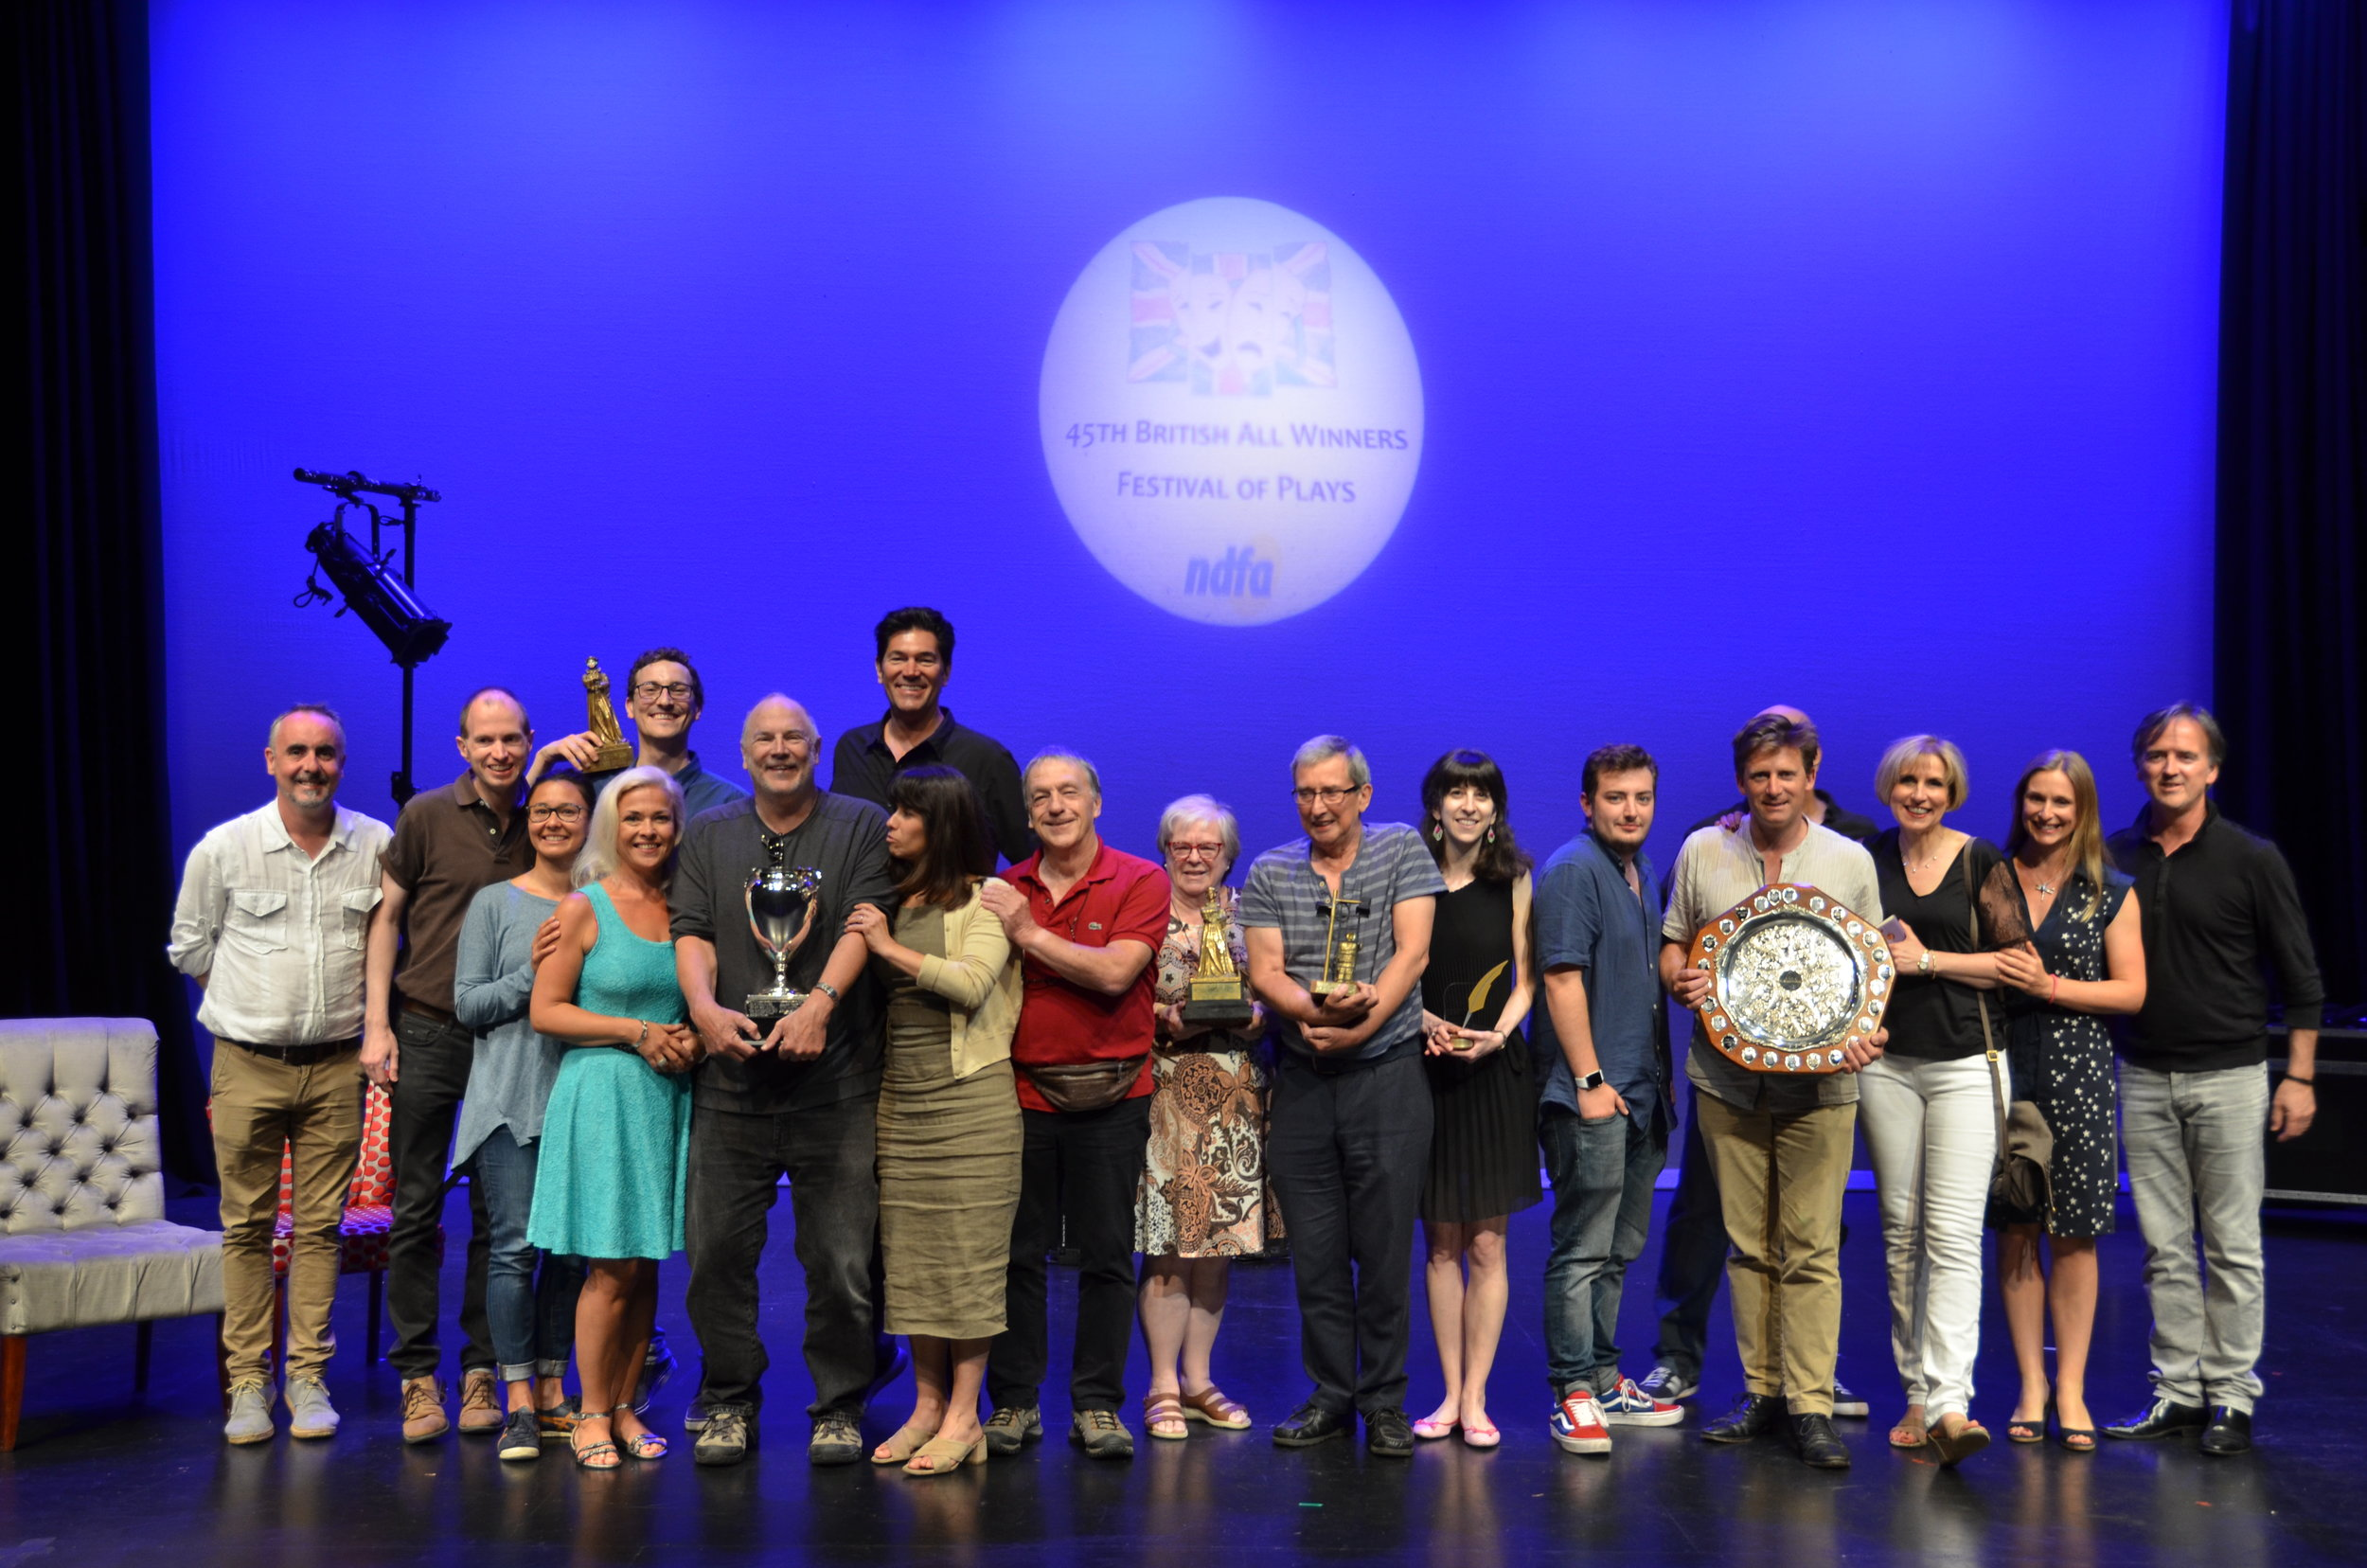 45th British ALl Winners Festival 2019 - Youth AwardsGADOC Audience Appreciation Award - Limitless Academy of Performing ArtsThe Buxton Trophy for the most promising youth player - Josh Fowler The Academy of Speech & DramaWinner: Limitless Academy of Performing Arts